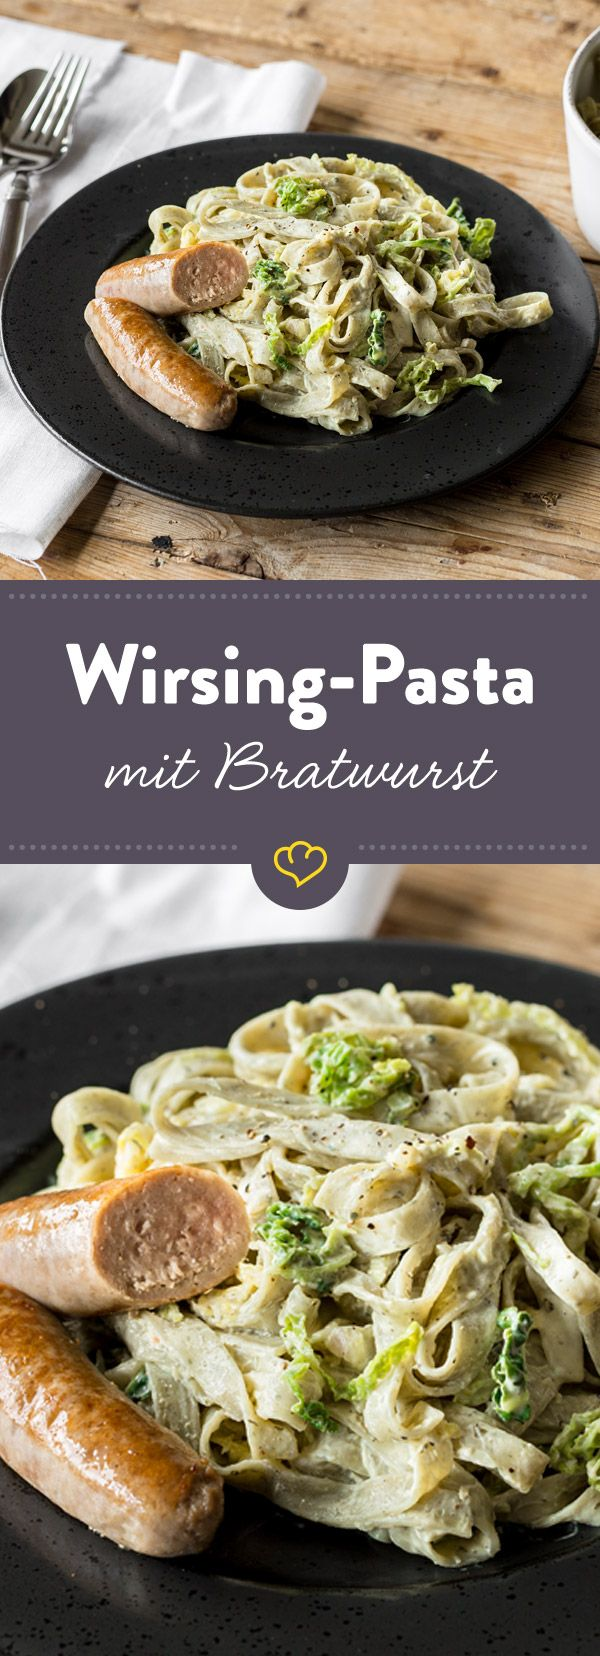 wirsing pasta mit bratwurst und zitronen frischk se sauce rezept pasta pinterest pasta. Black Bedroom Furniture Sets. Home Design Ideas